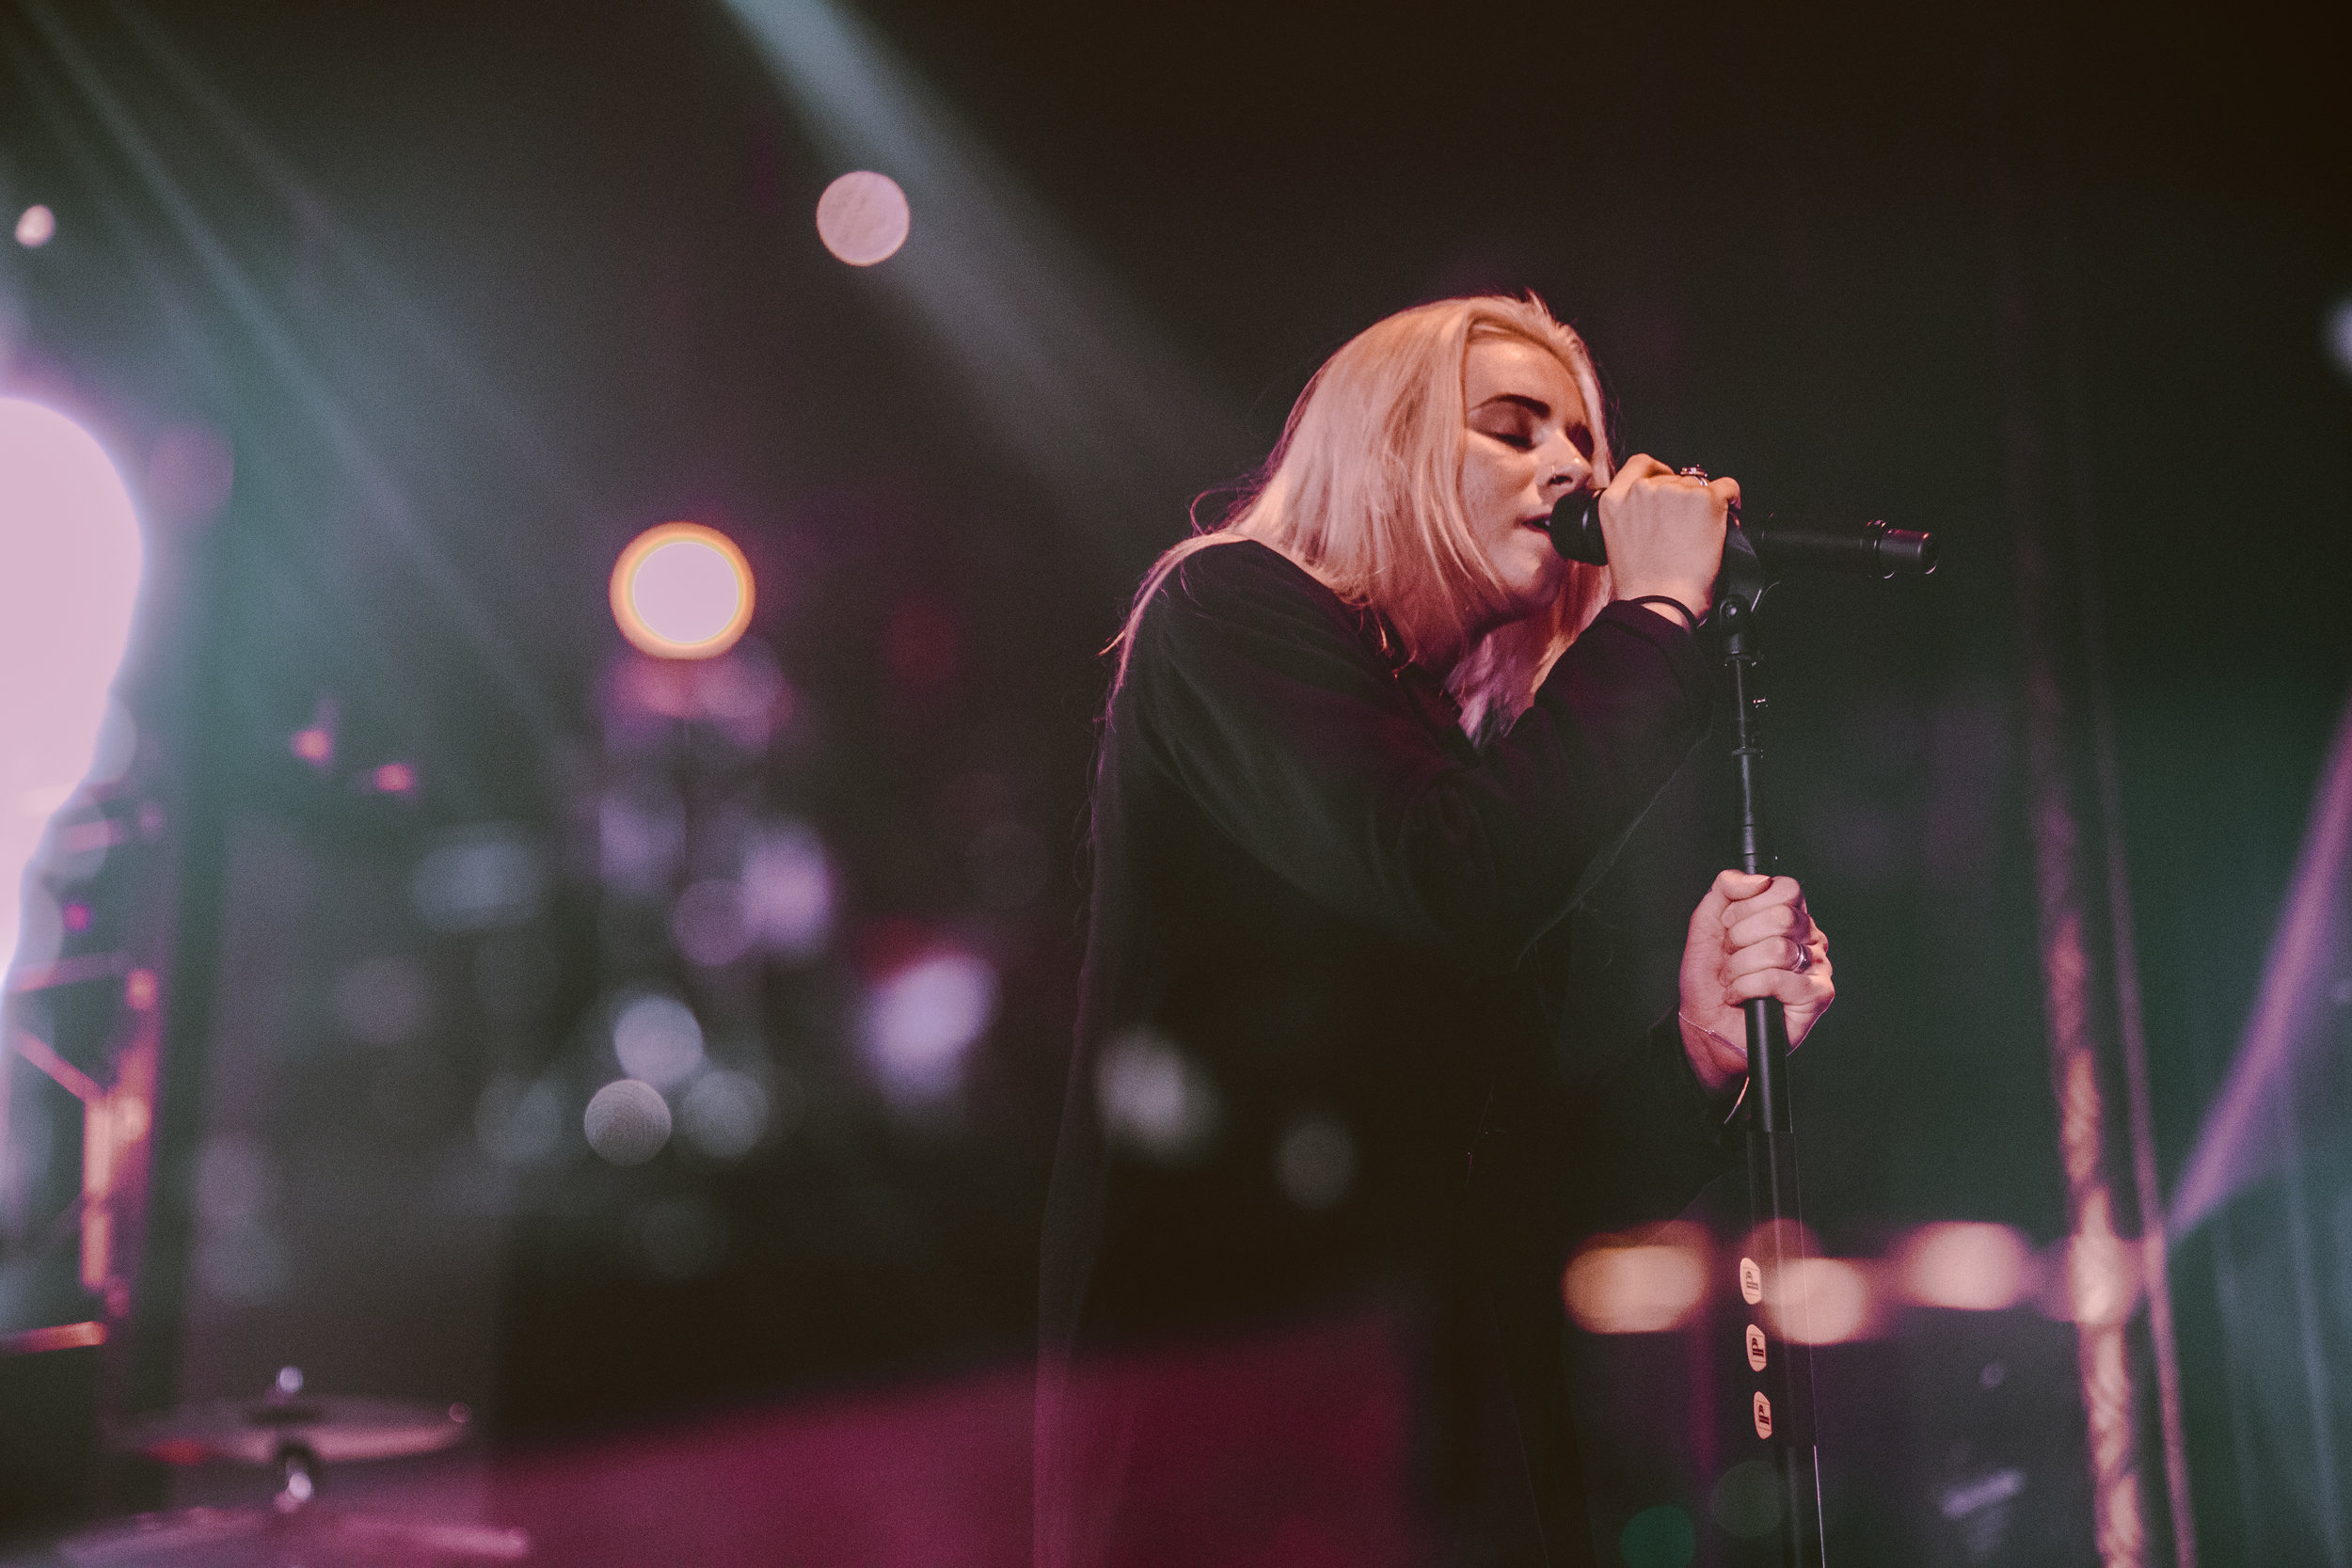 Copy of PVRIS Photos by Ciara Glagola